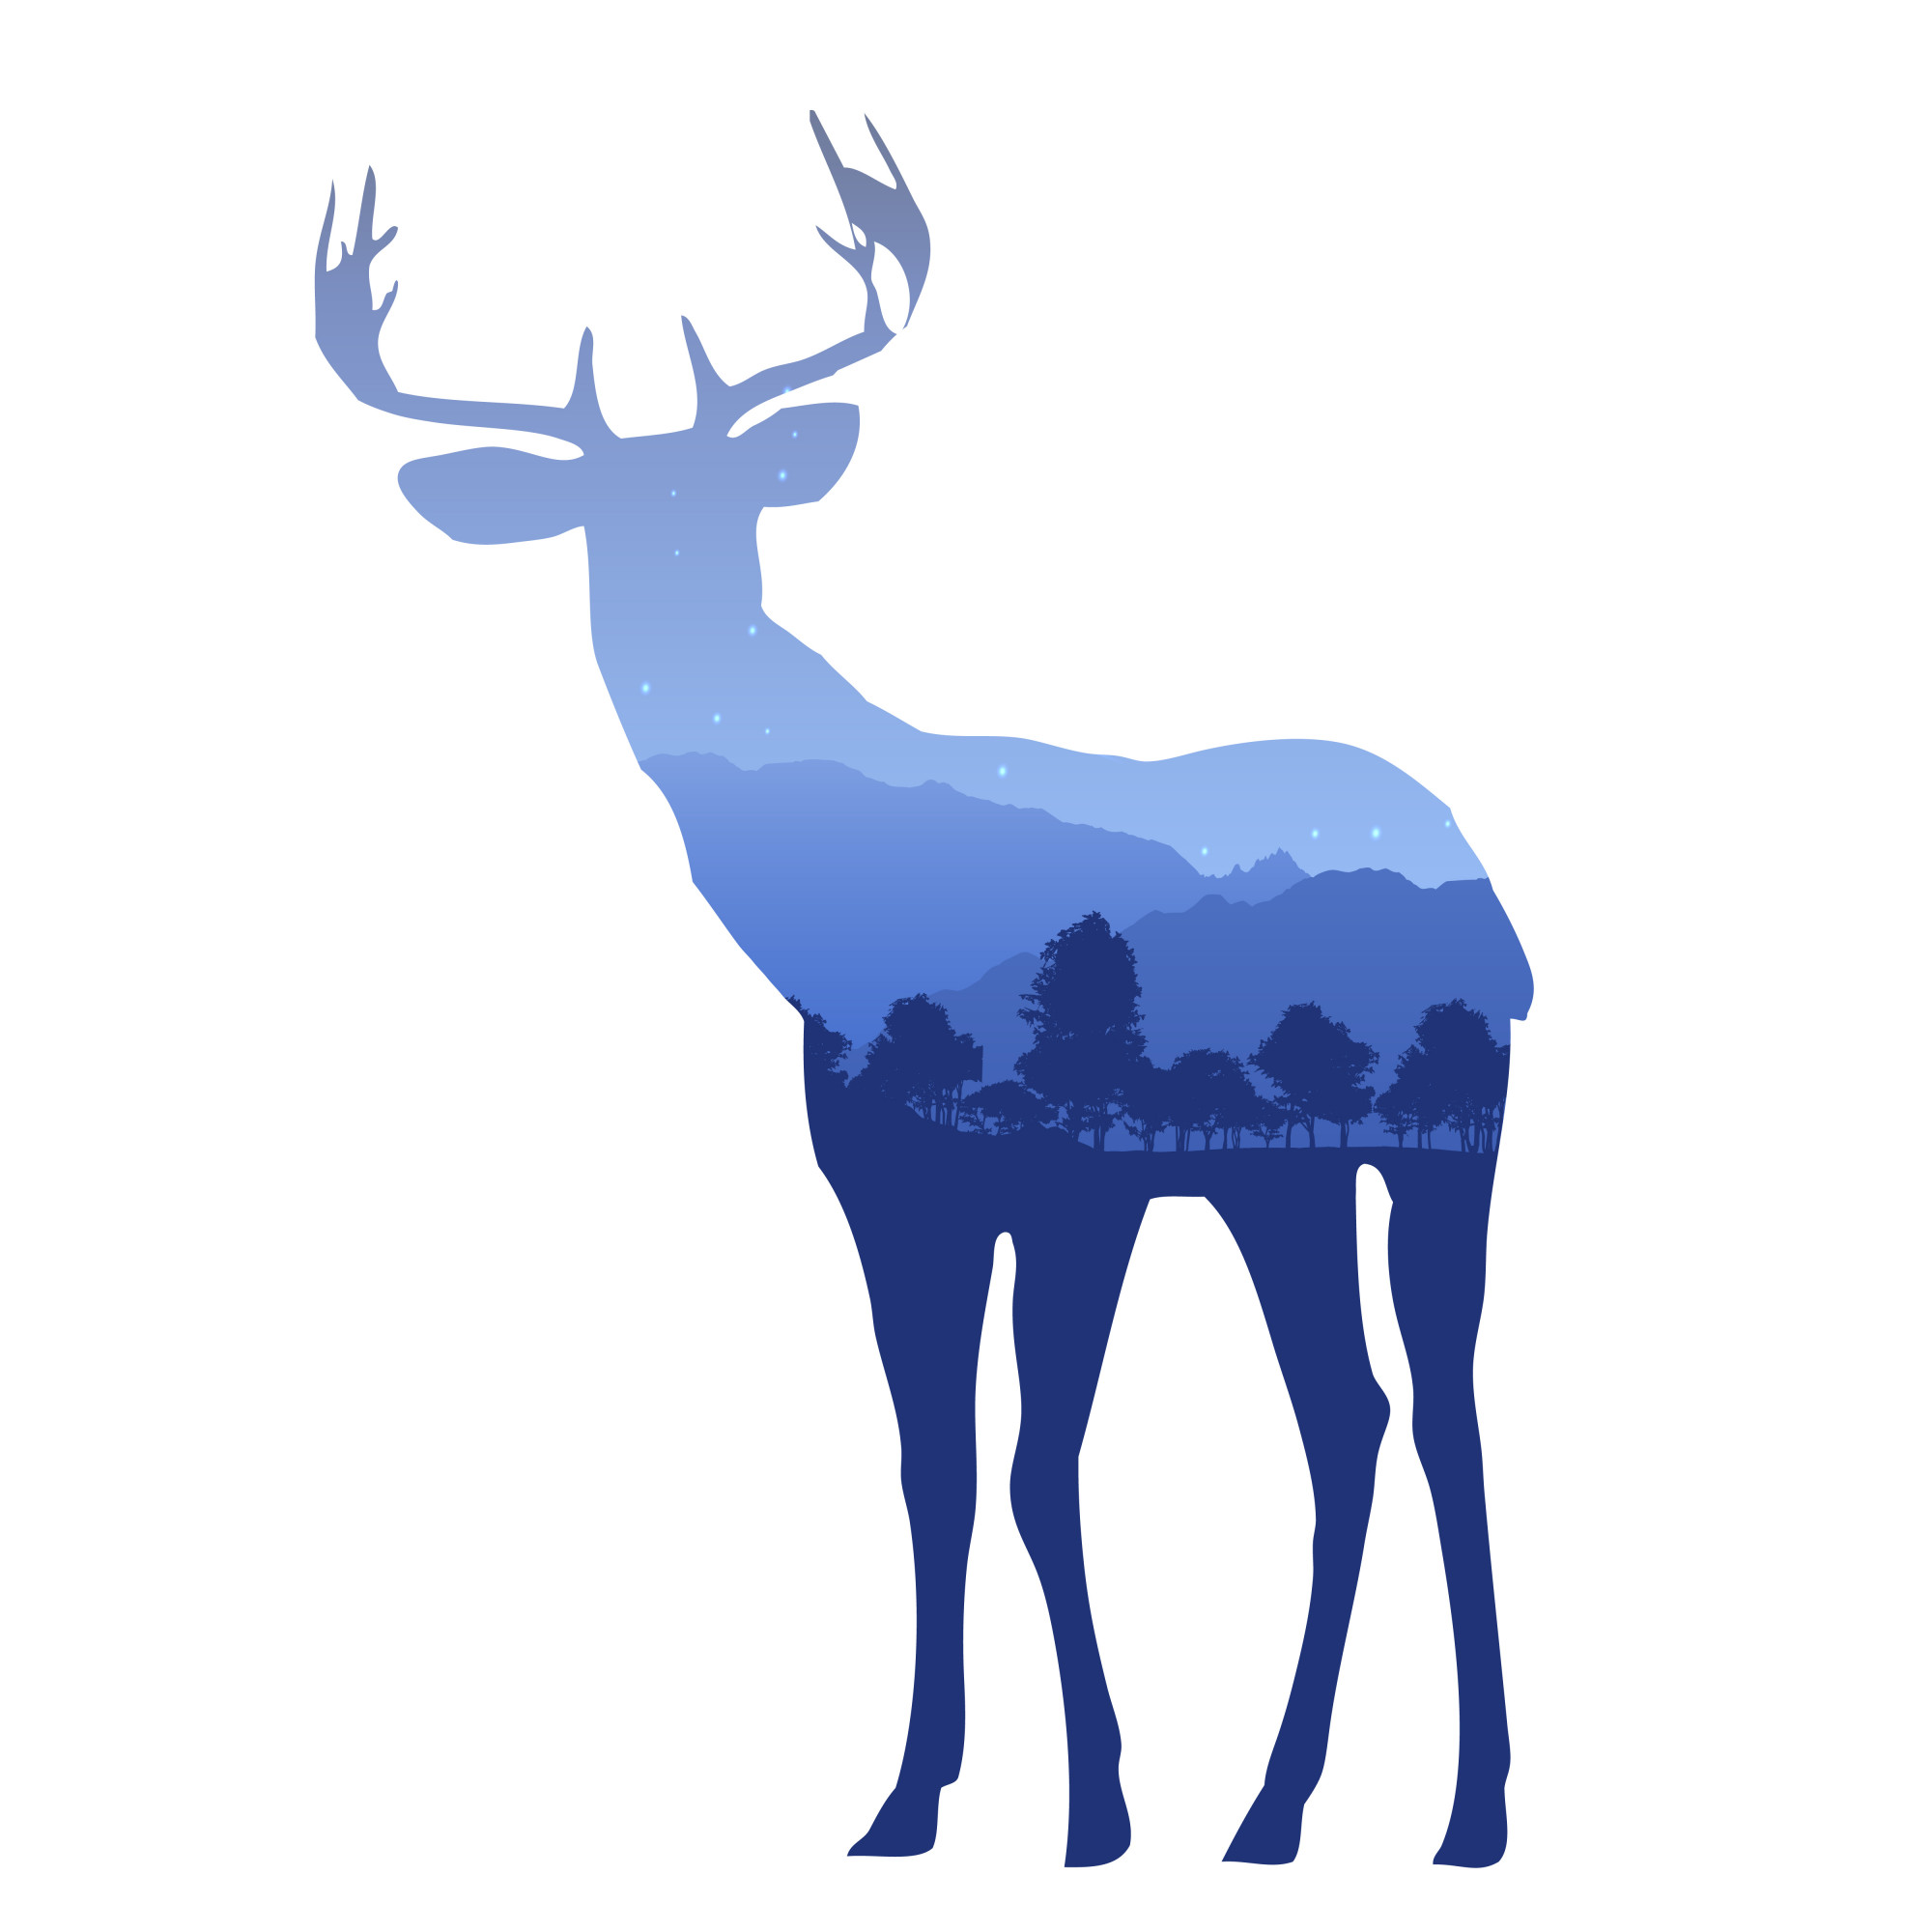 Deer silhouette with double exposure effect with mountain landscape